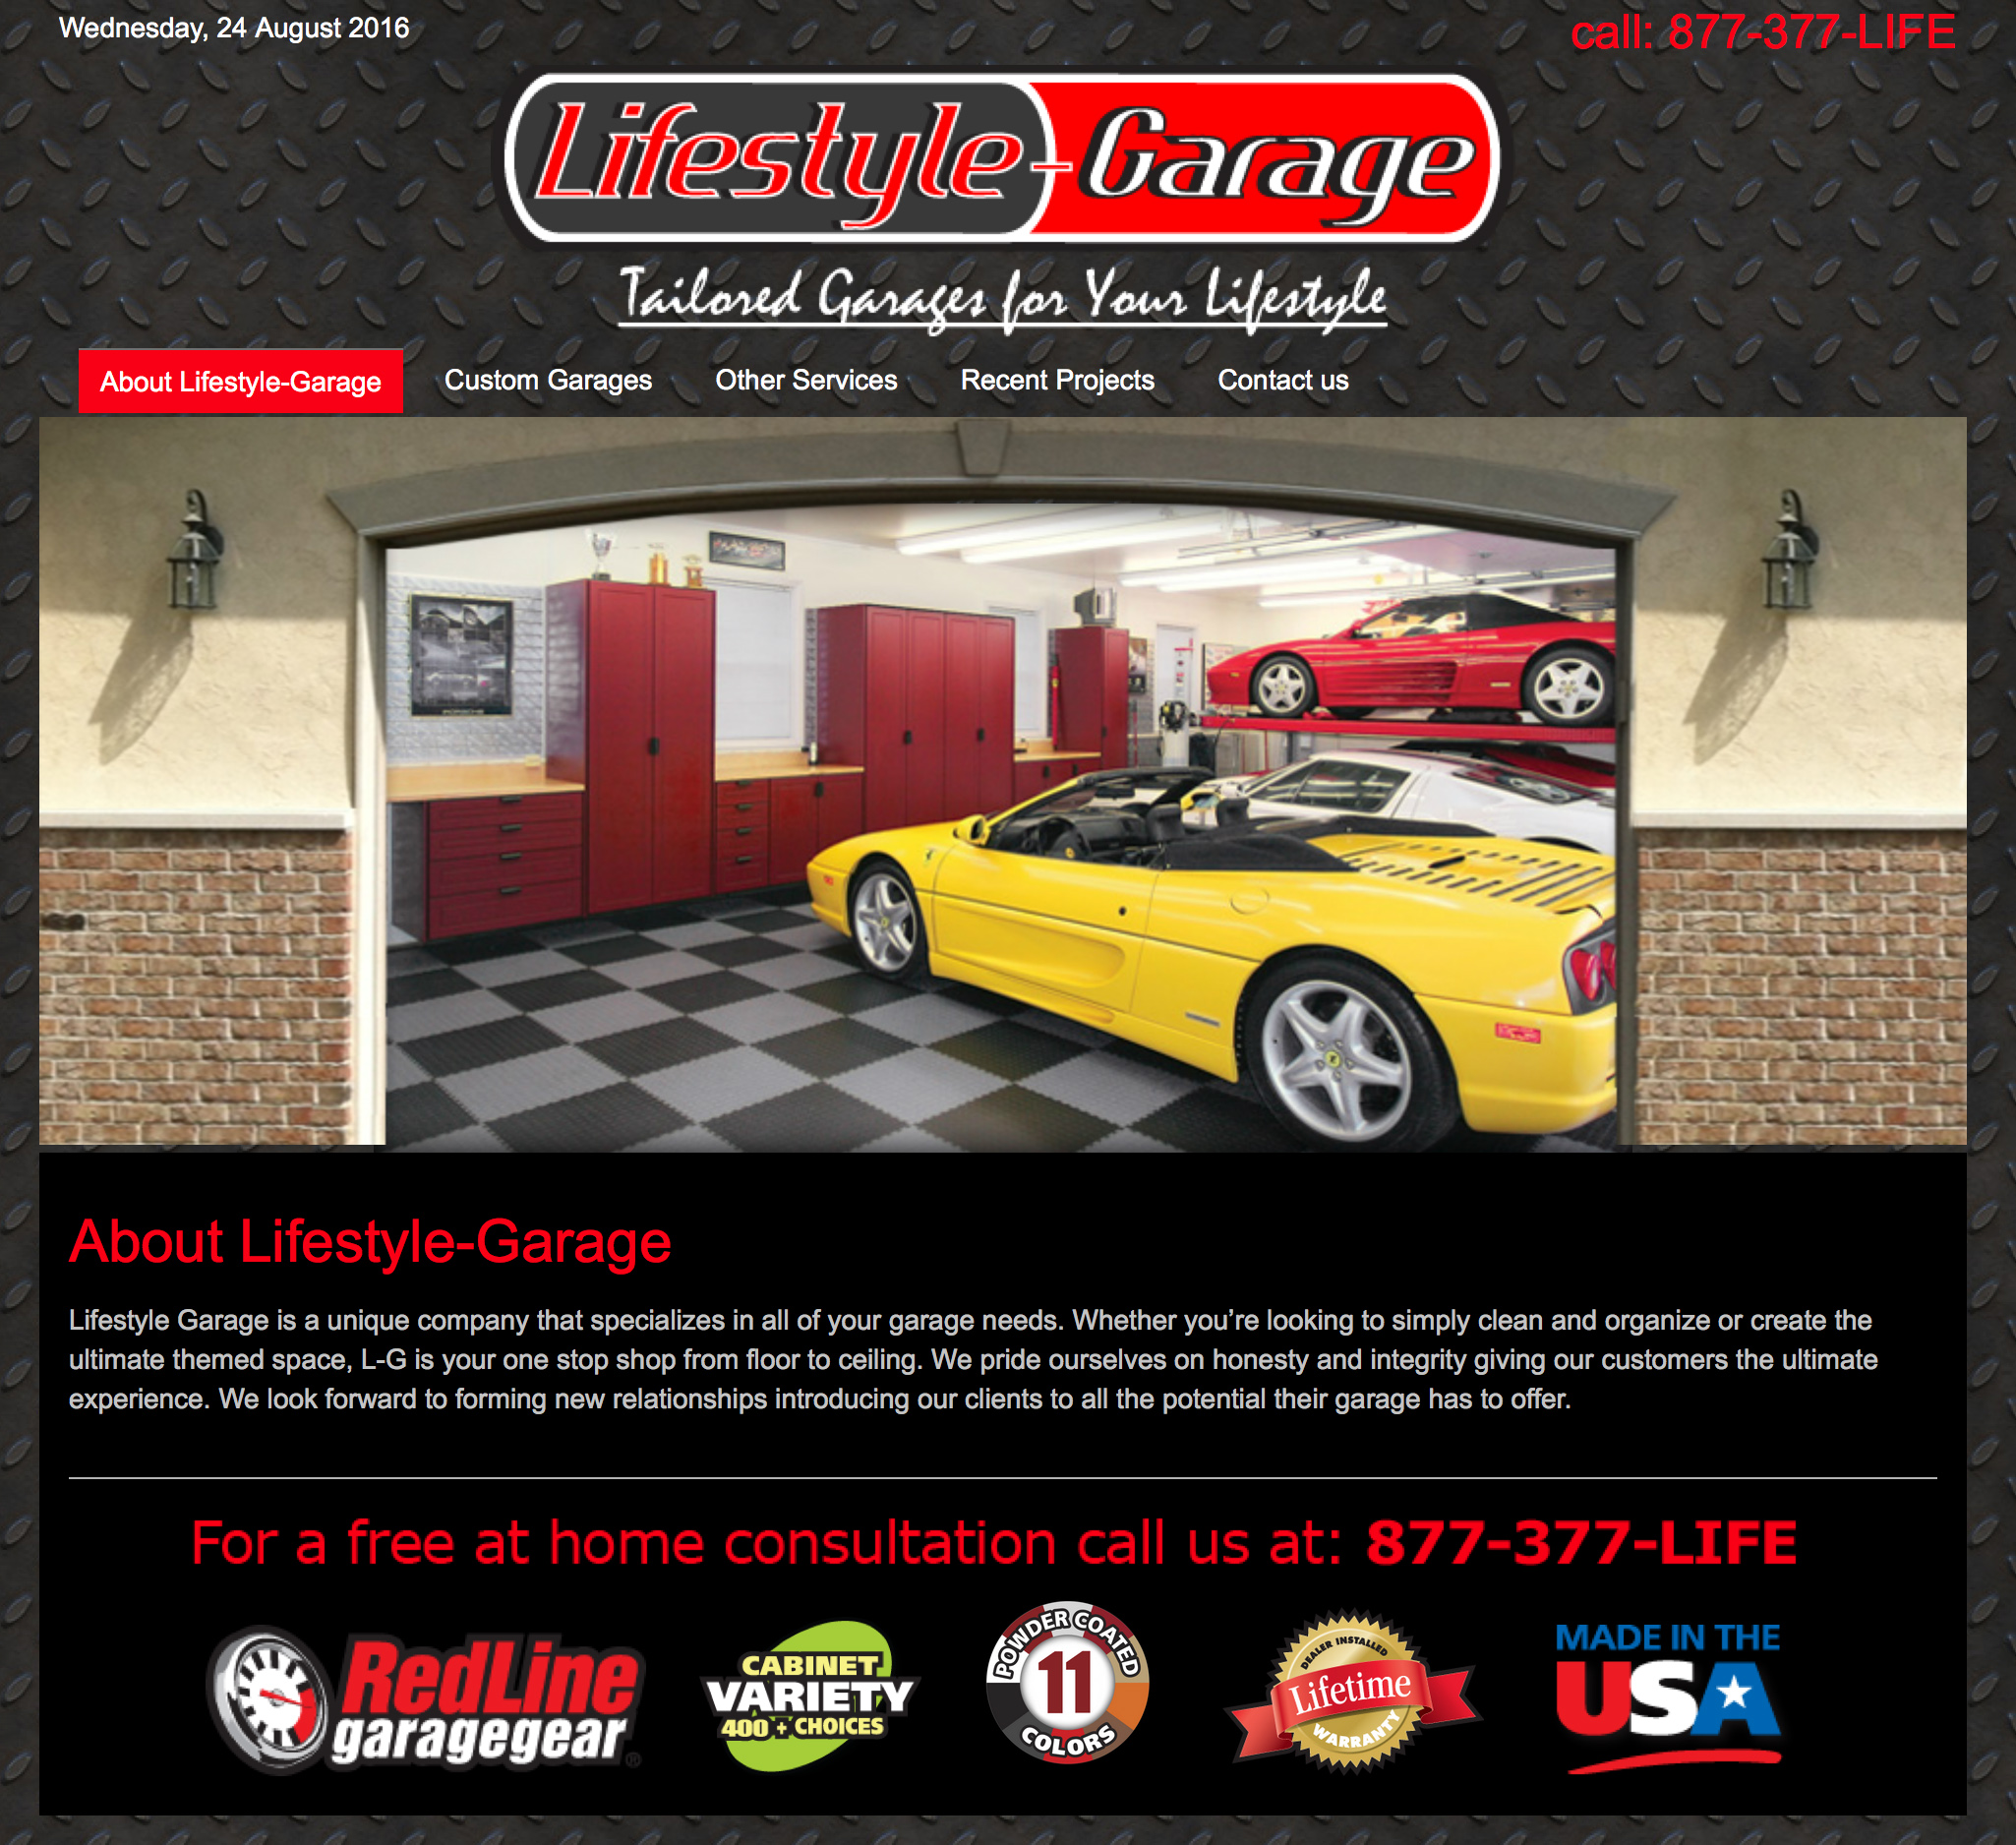 Lifestyle-Garage.com